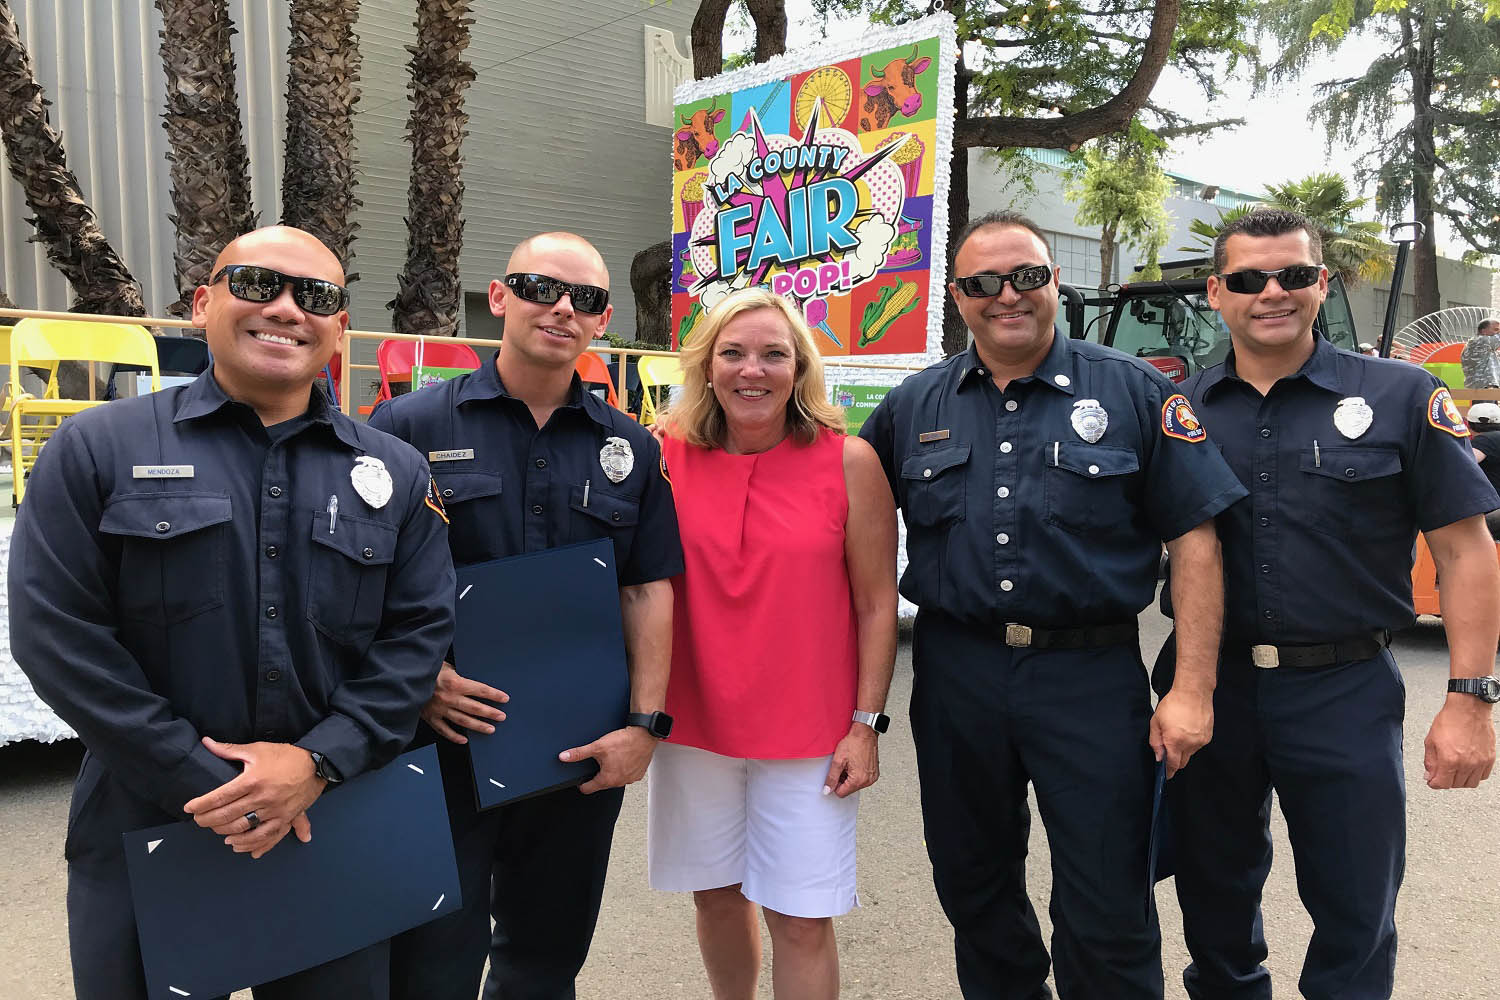 On Sunday, September 1, 2019, First District Supervisor Hilda Solis hosted her Community Heroes reception at the Los Angeles County Fair in Pomona.